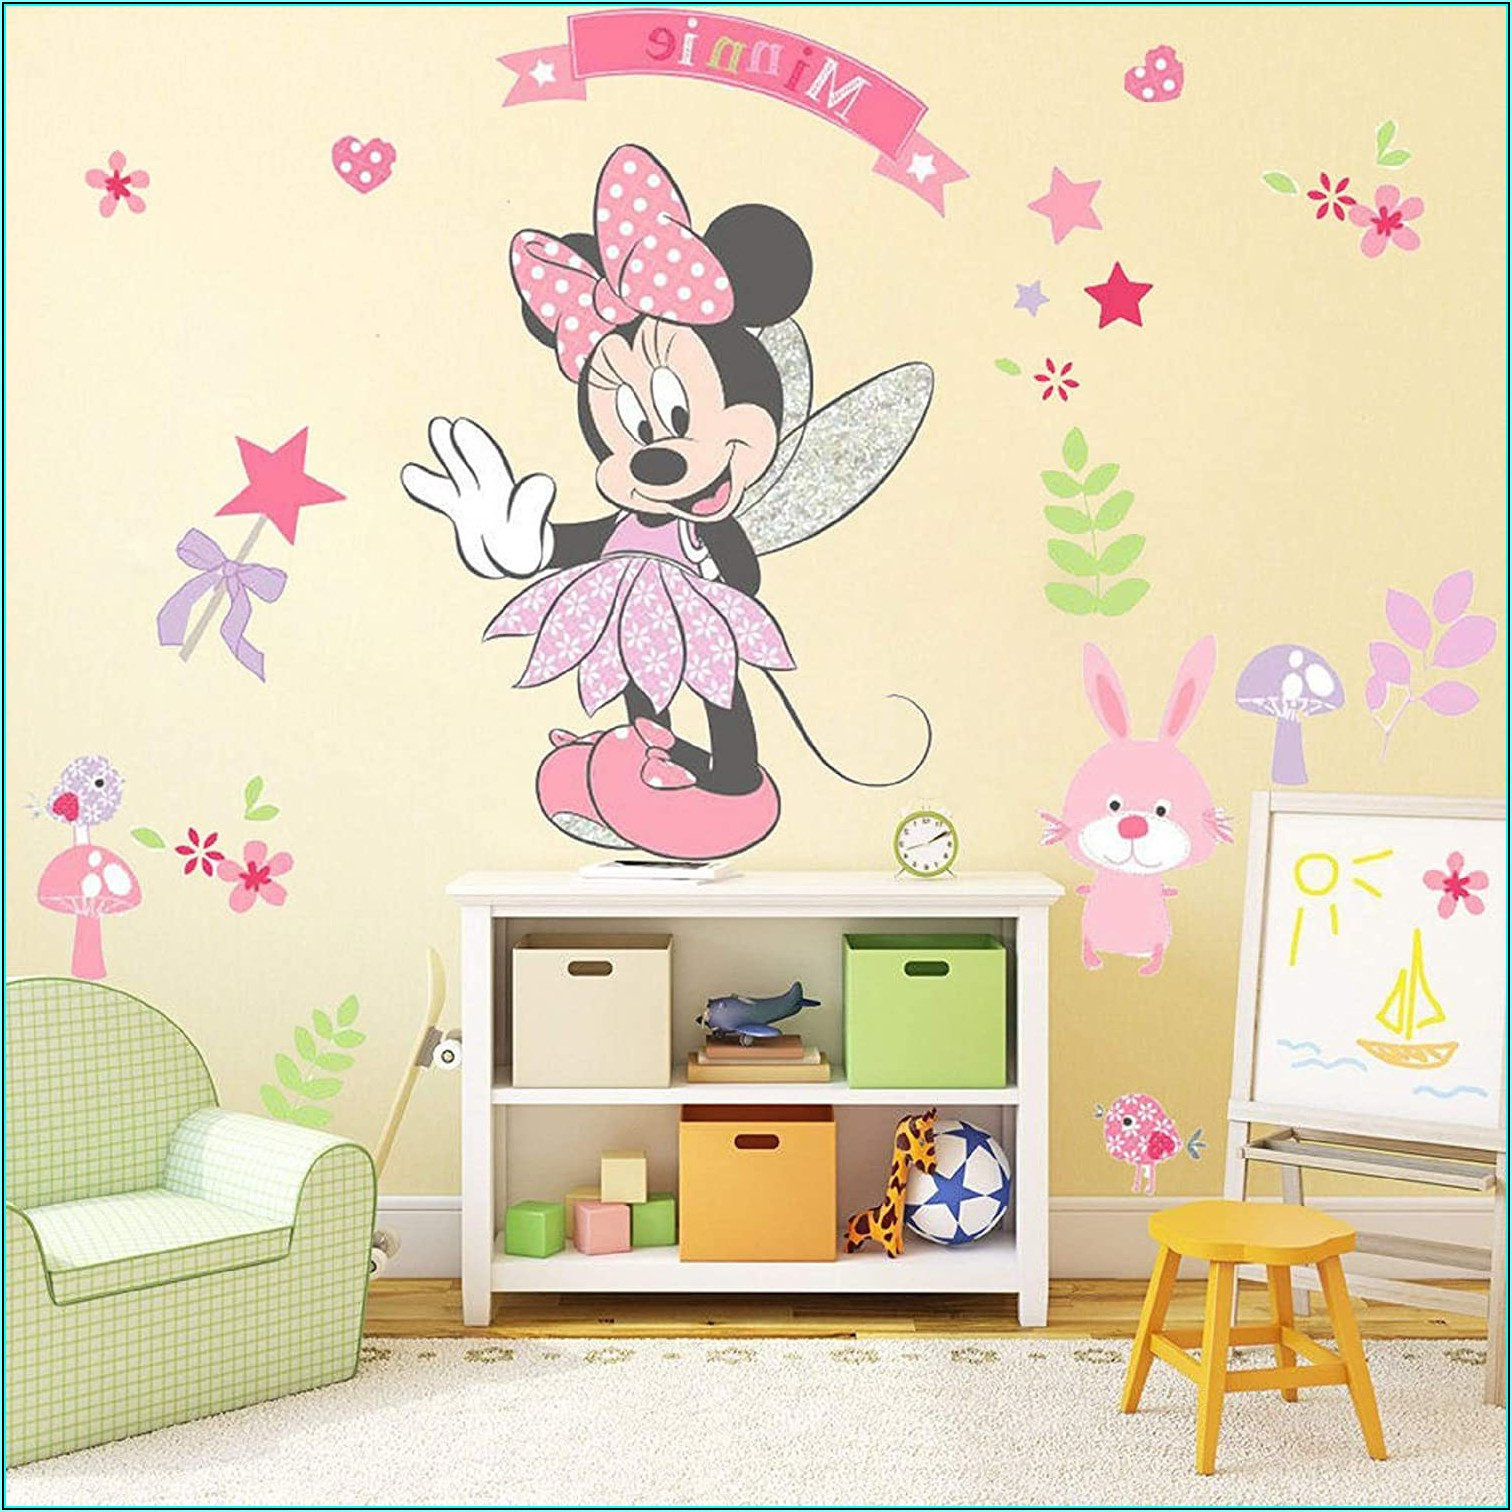 Wandtattoo Kinderzimmer Minnie Maus